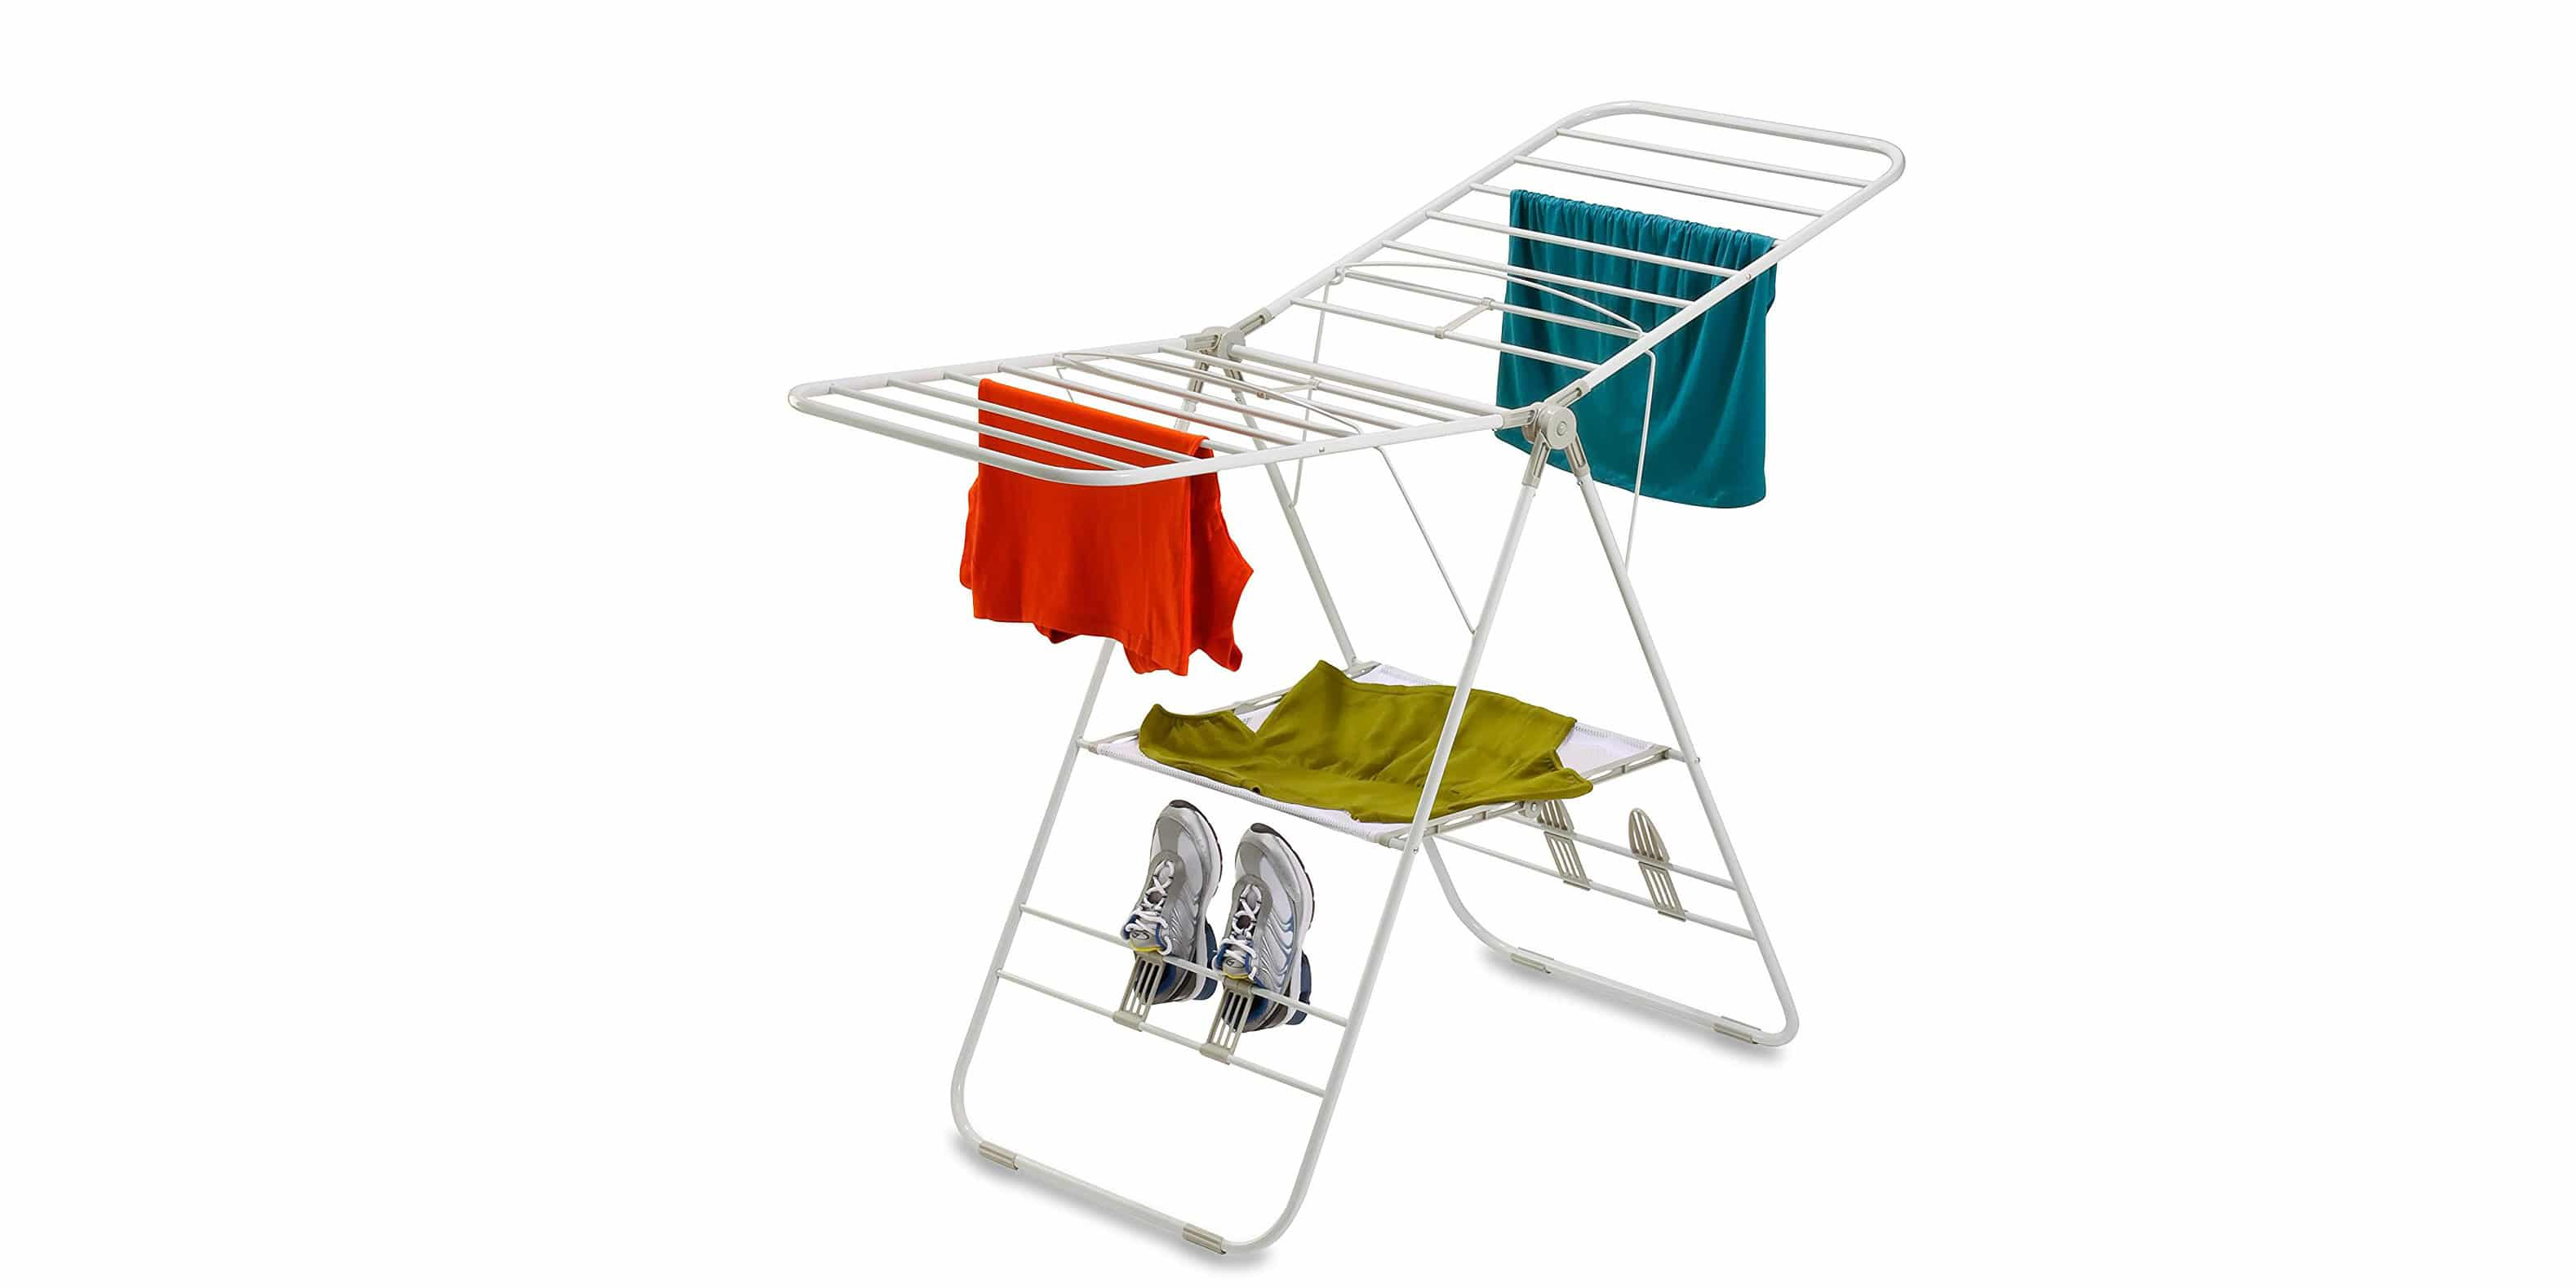 reviews clothes roma wayfair dryer drying leifheit rack laundry organization pdx storage